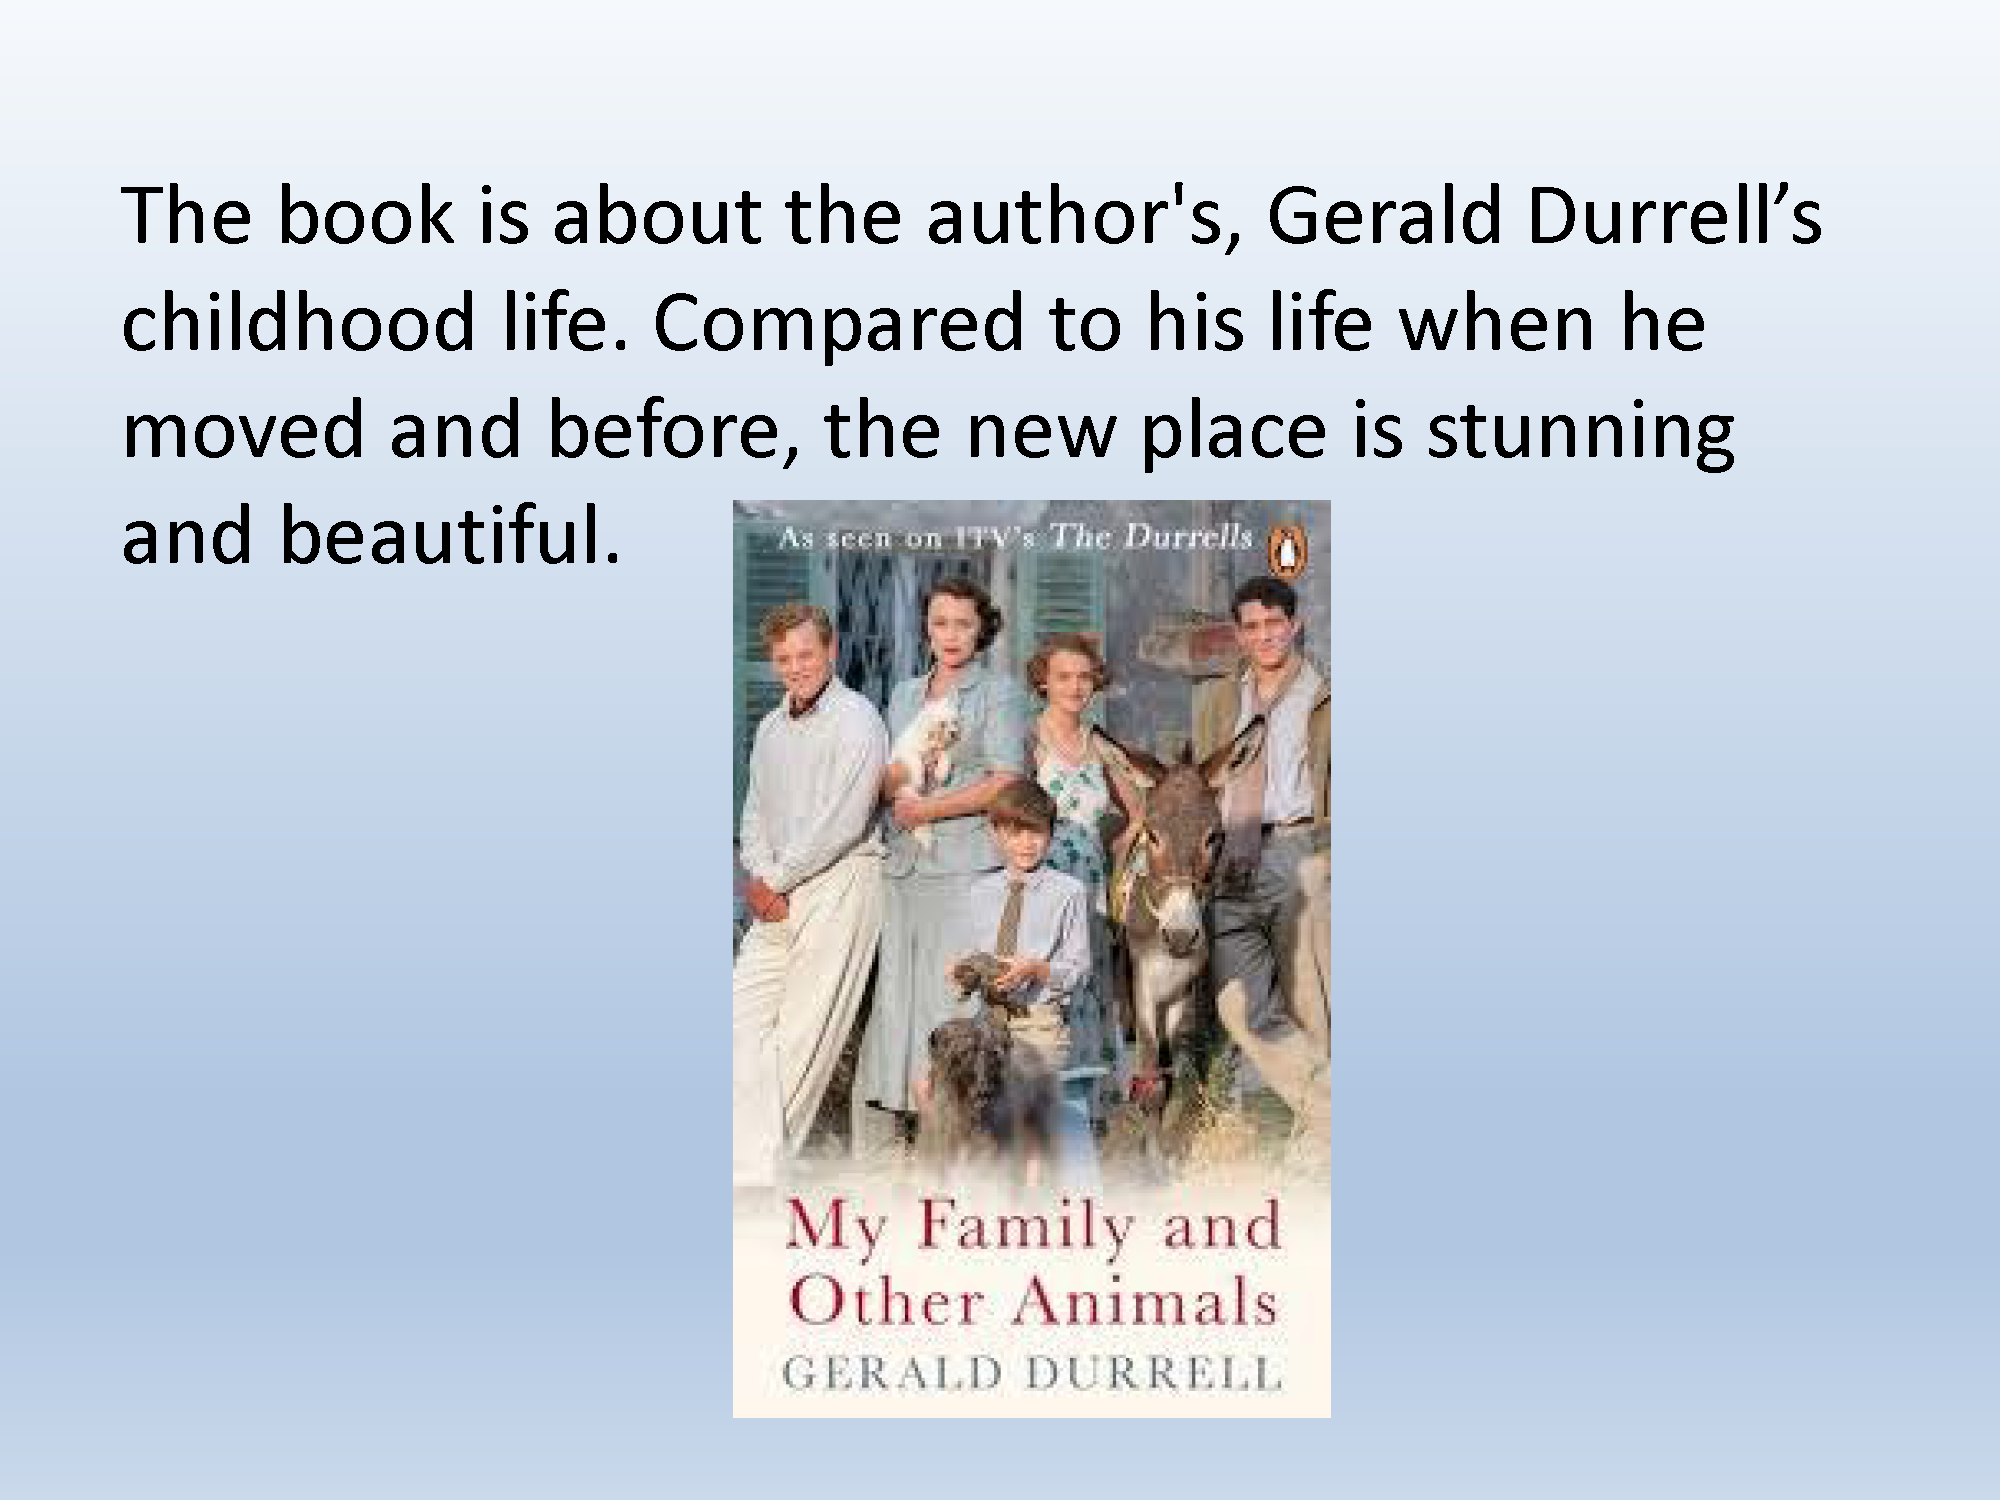 Gerald-Durrell-My-Family-and-other-Animals-v2_Page_5